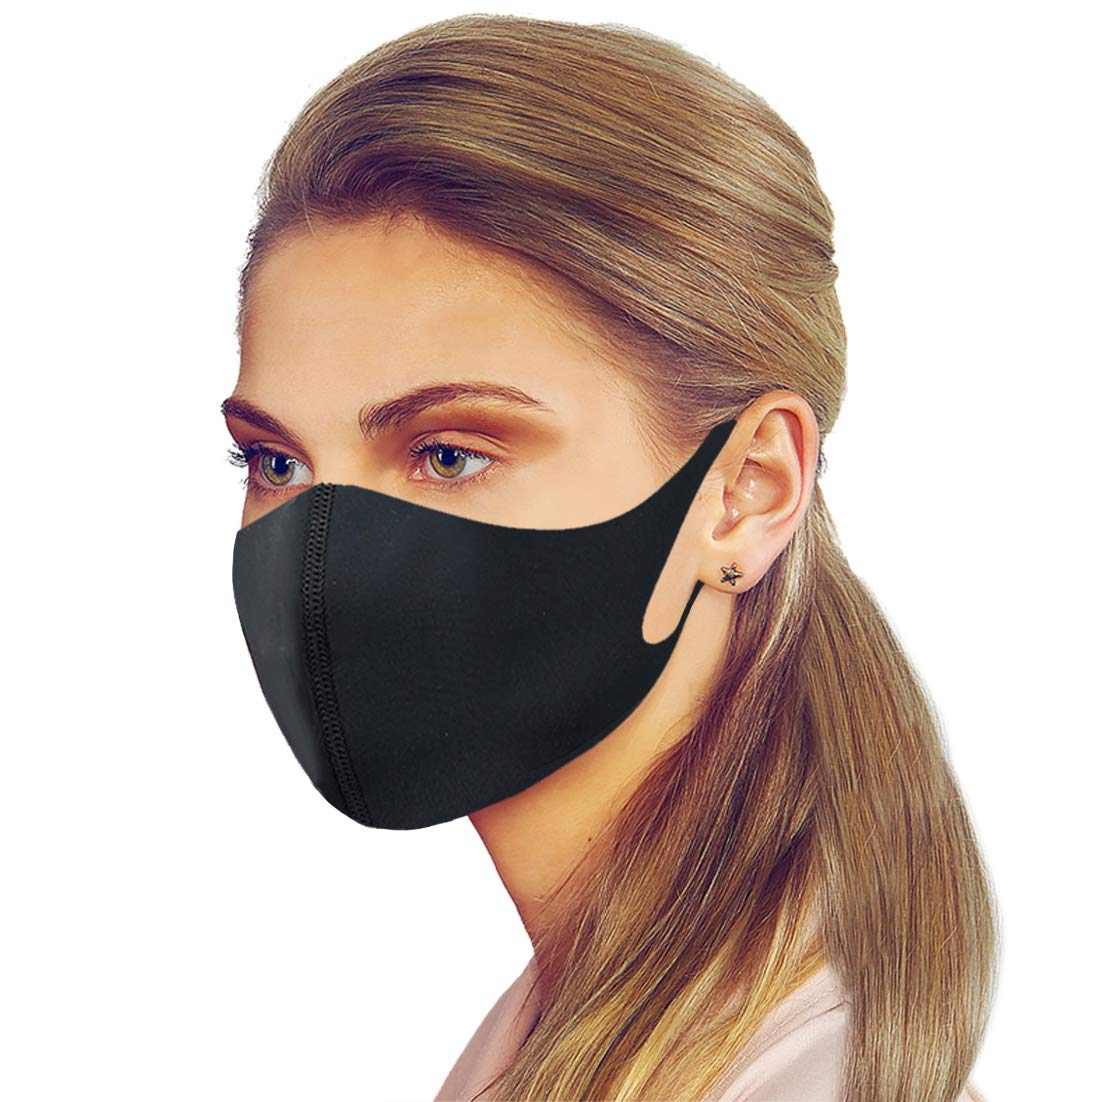 Premium Unisex Adults/Kids Dry Fit Face Protective Covering Gear Washable Reusable Double Fabric Layers (Black 1 Pack)